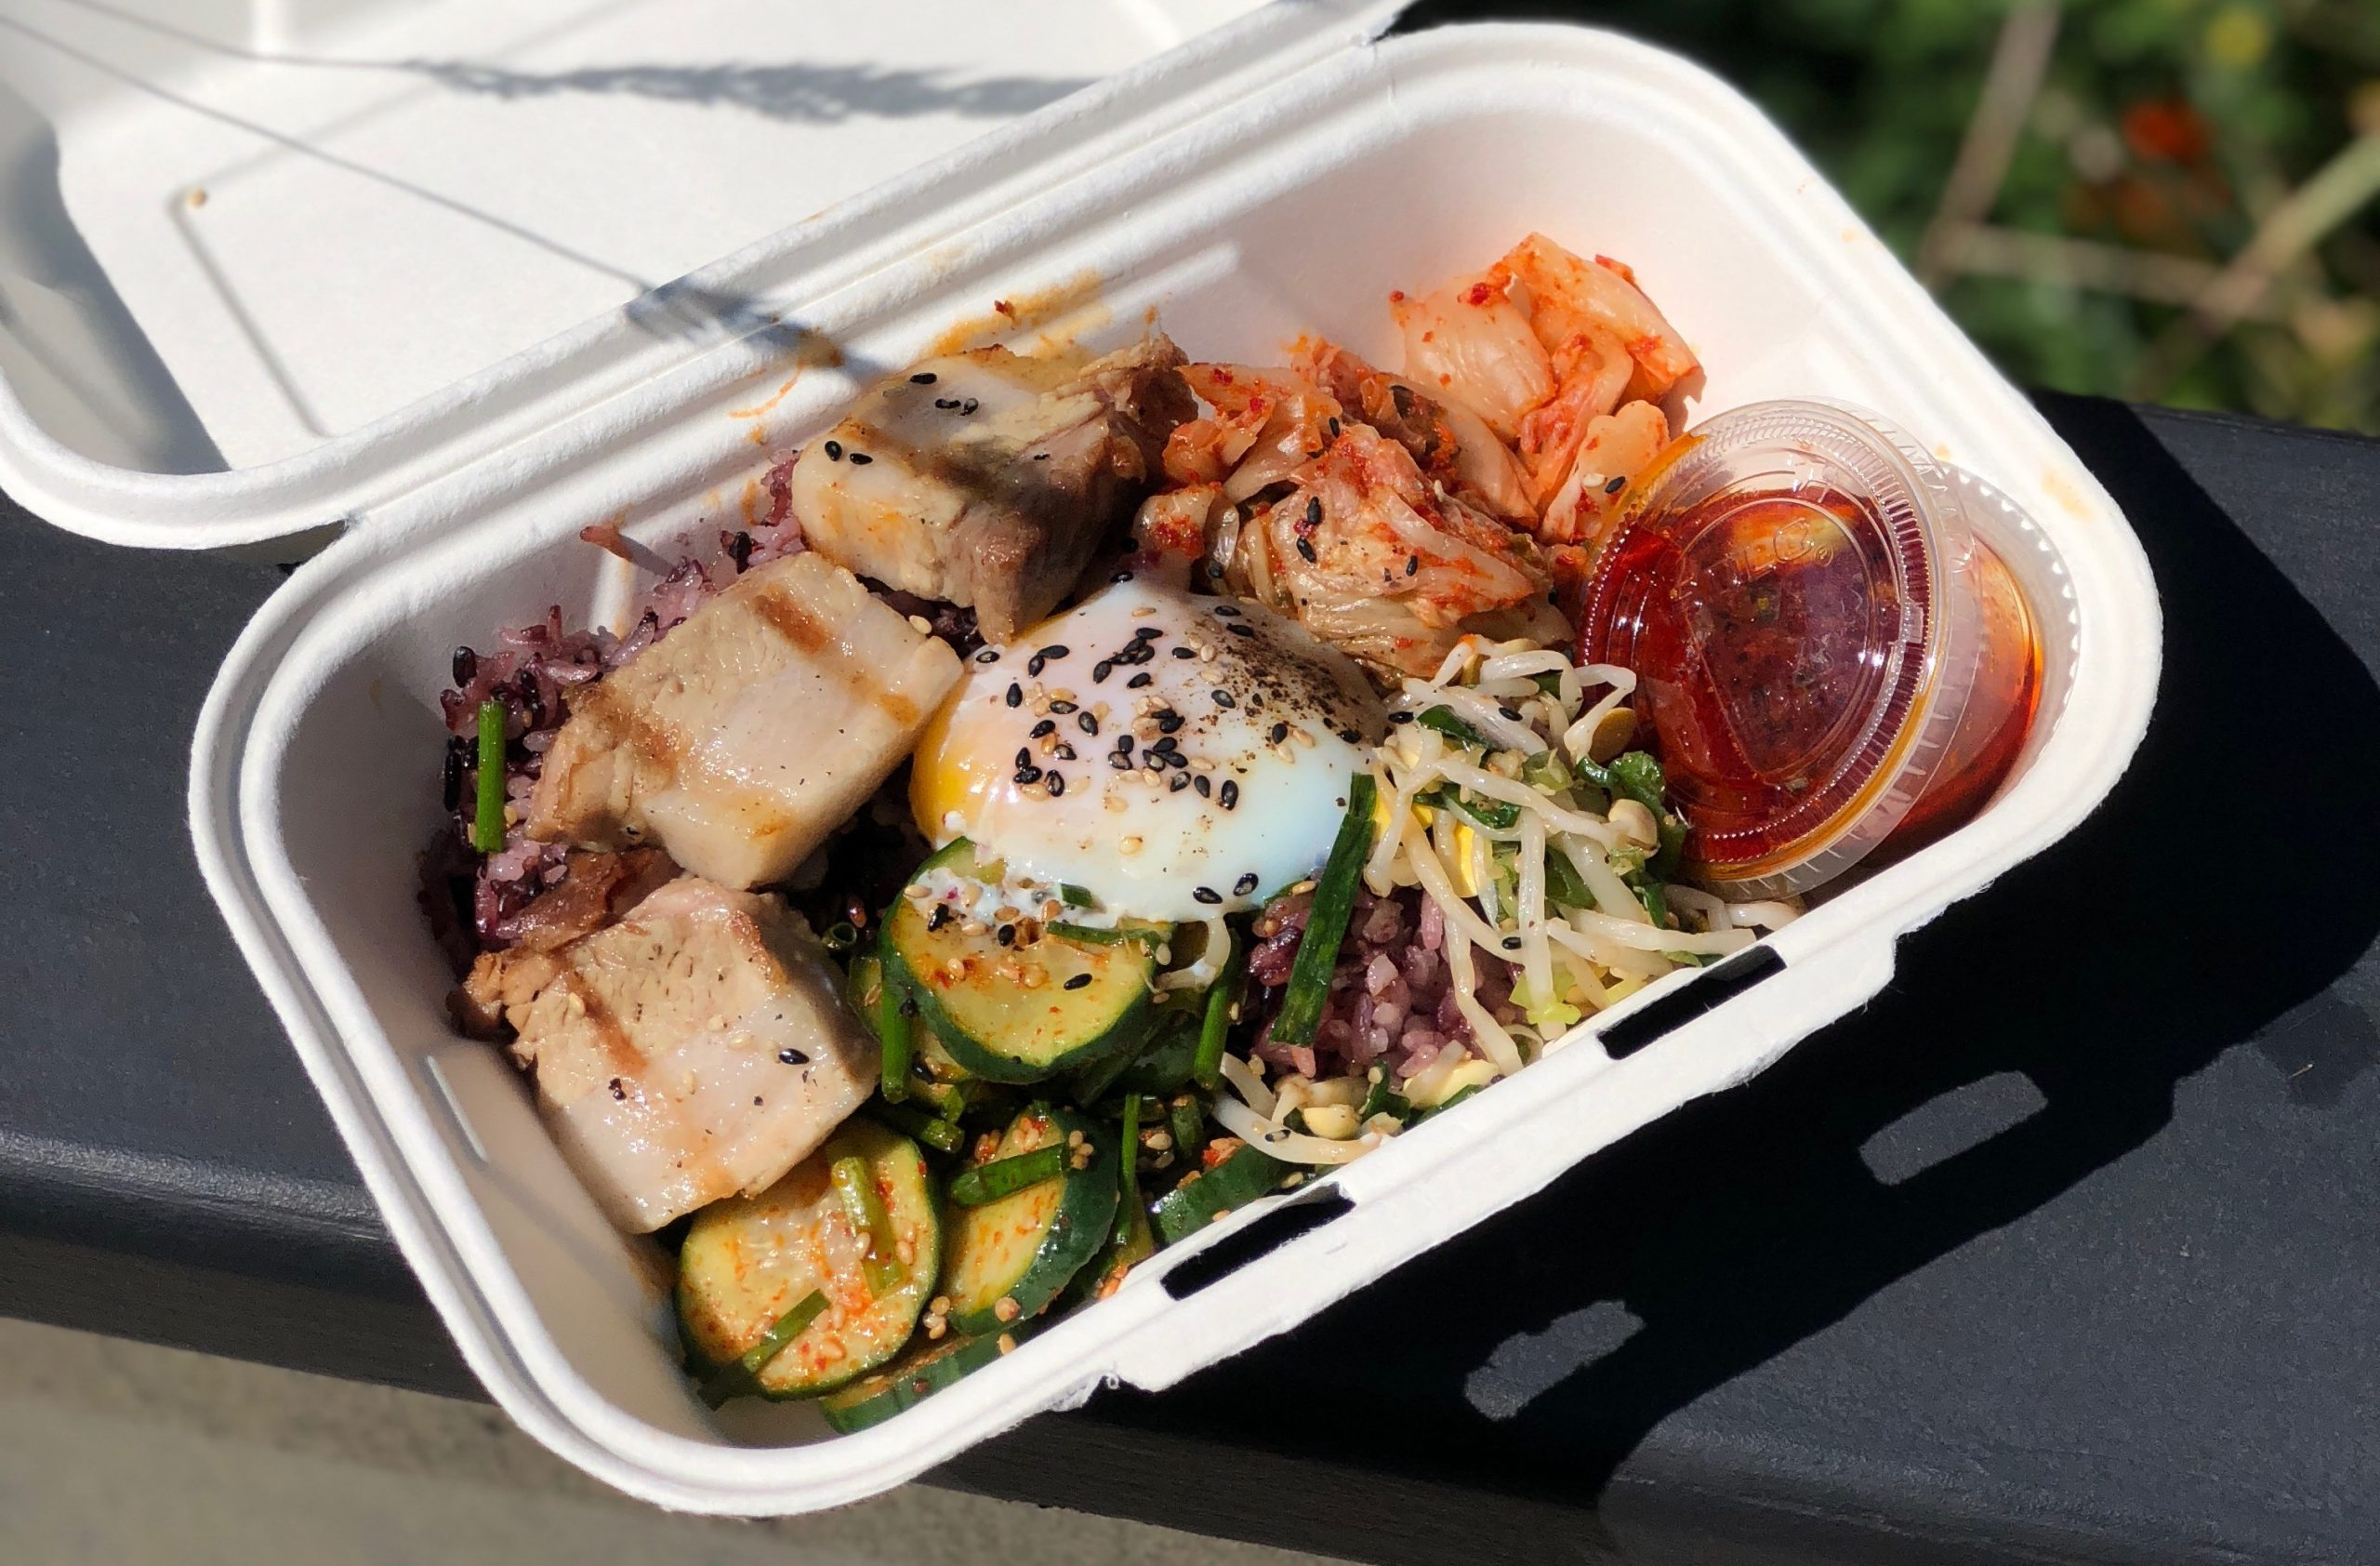 Bibimbop in a compostable to-go container